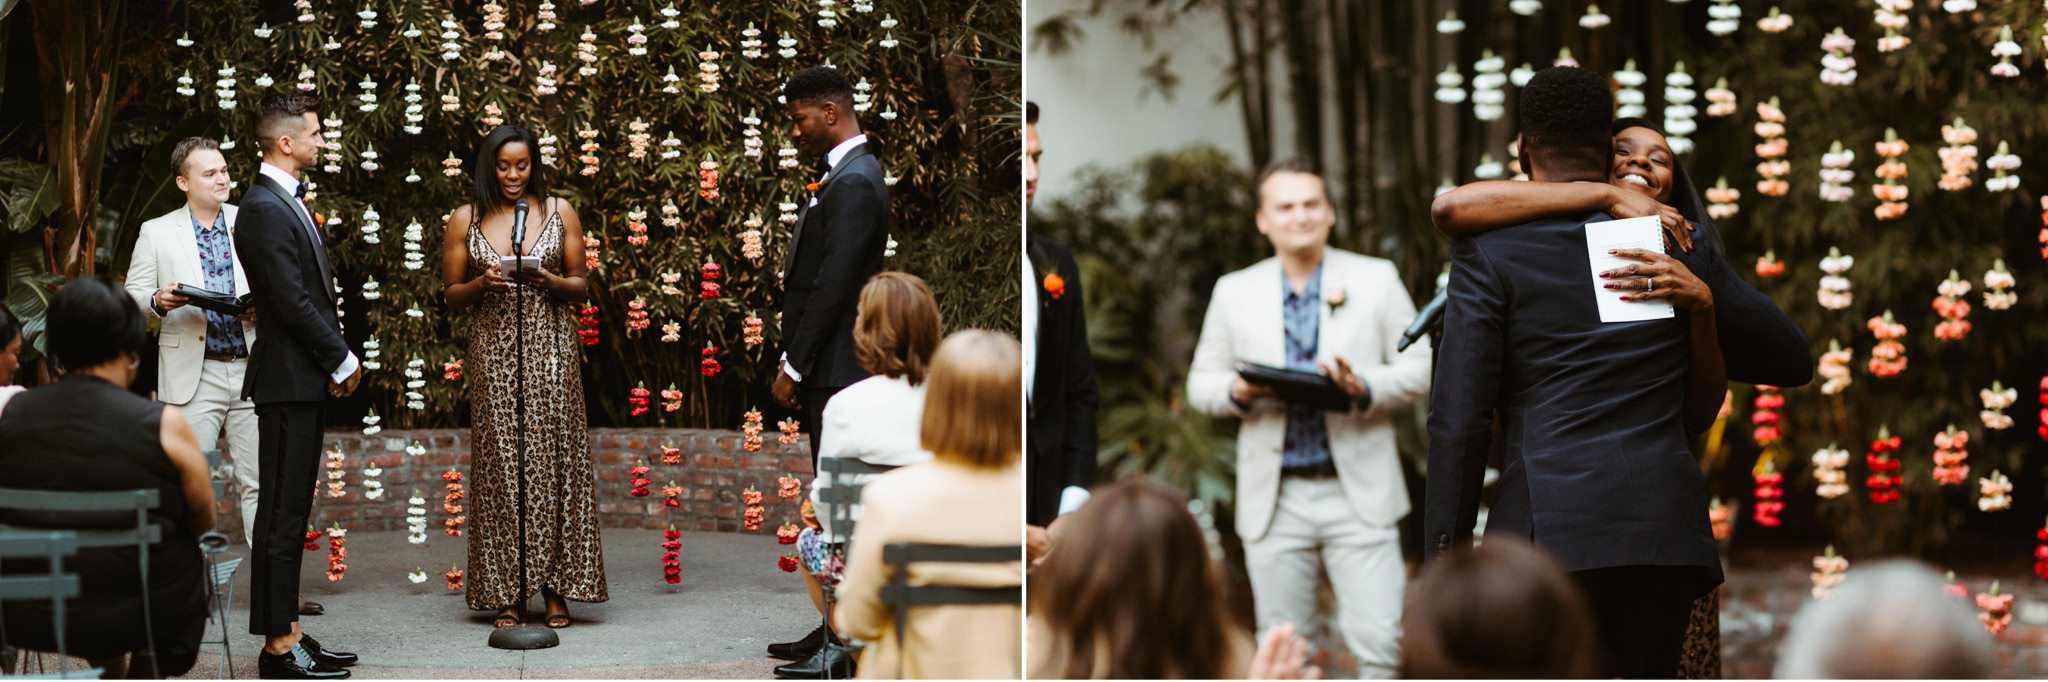 dtla wedding photographer 074